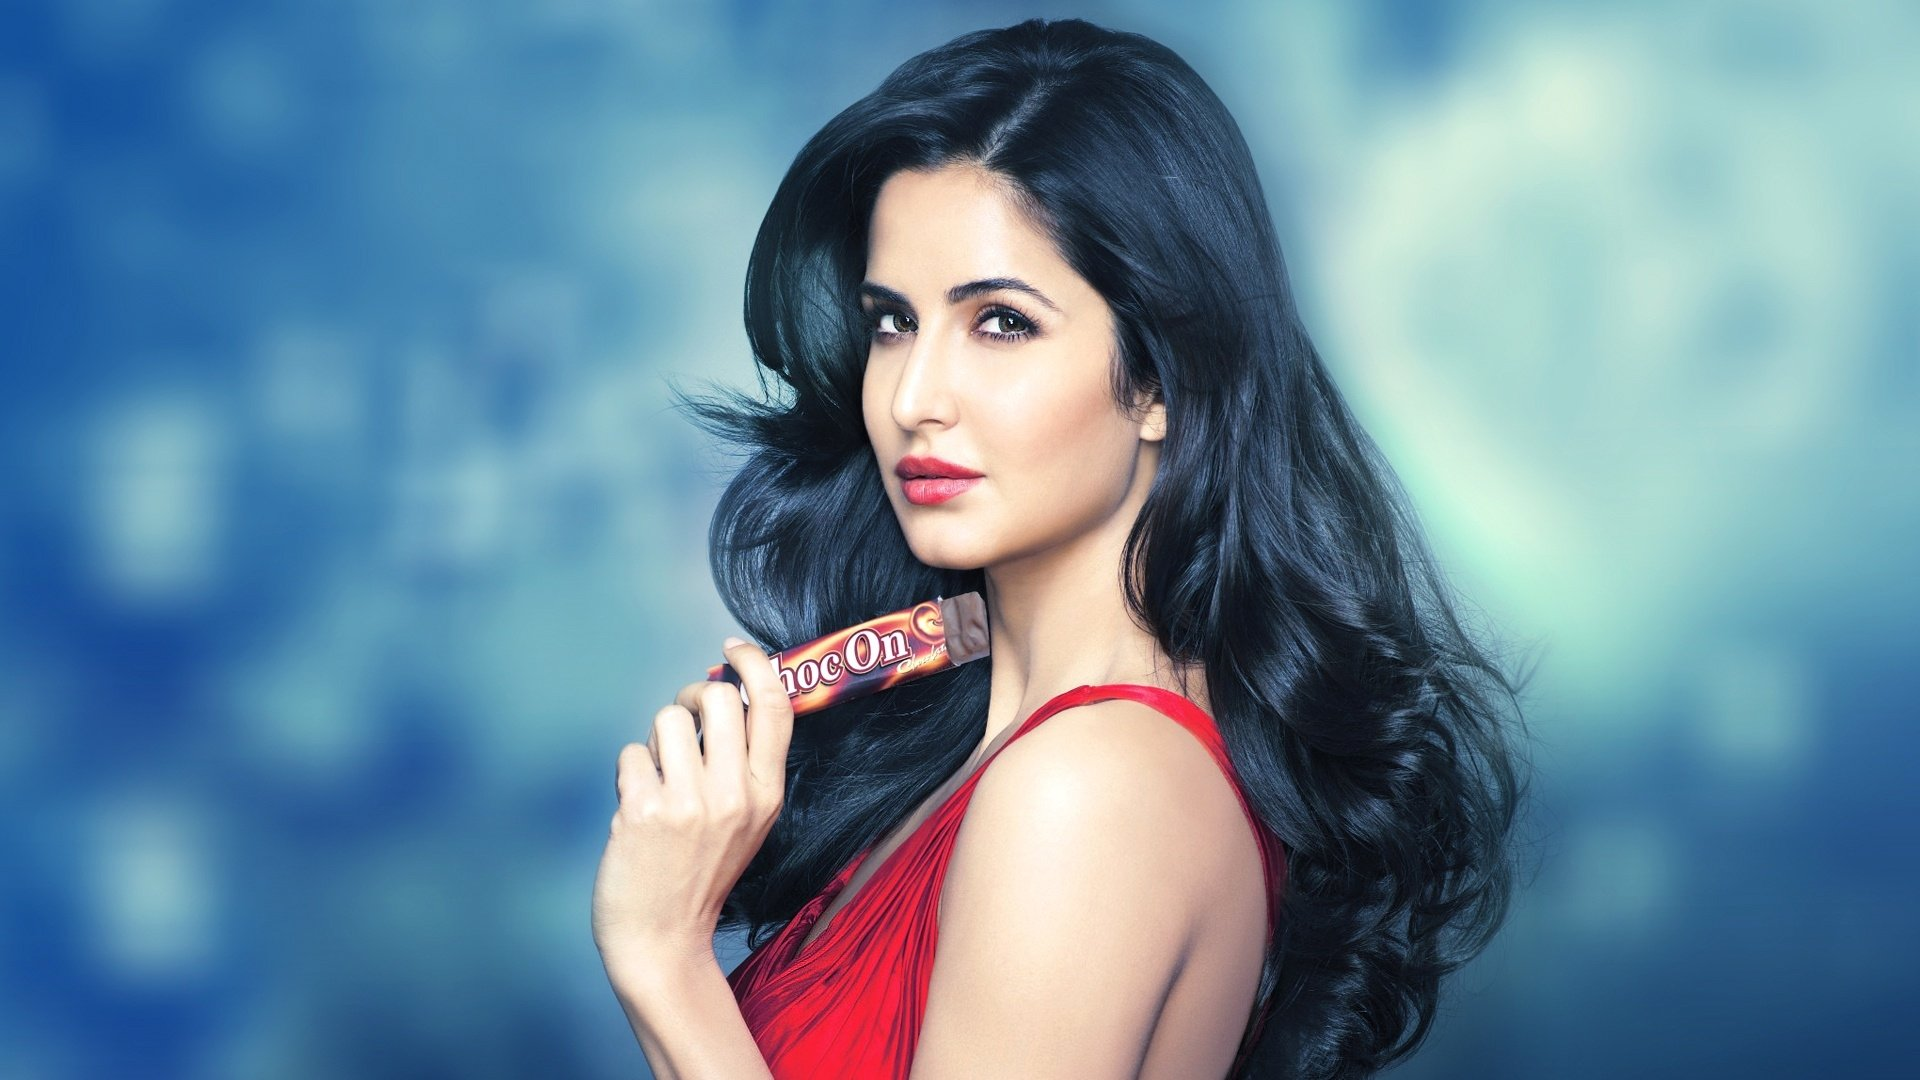 35 katrina kaif hd wallpapers | background images - wallpaper abyss